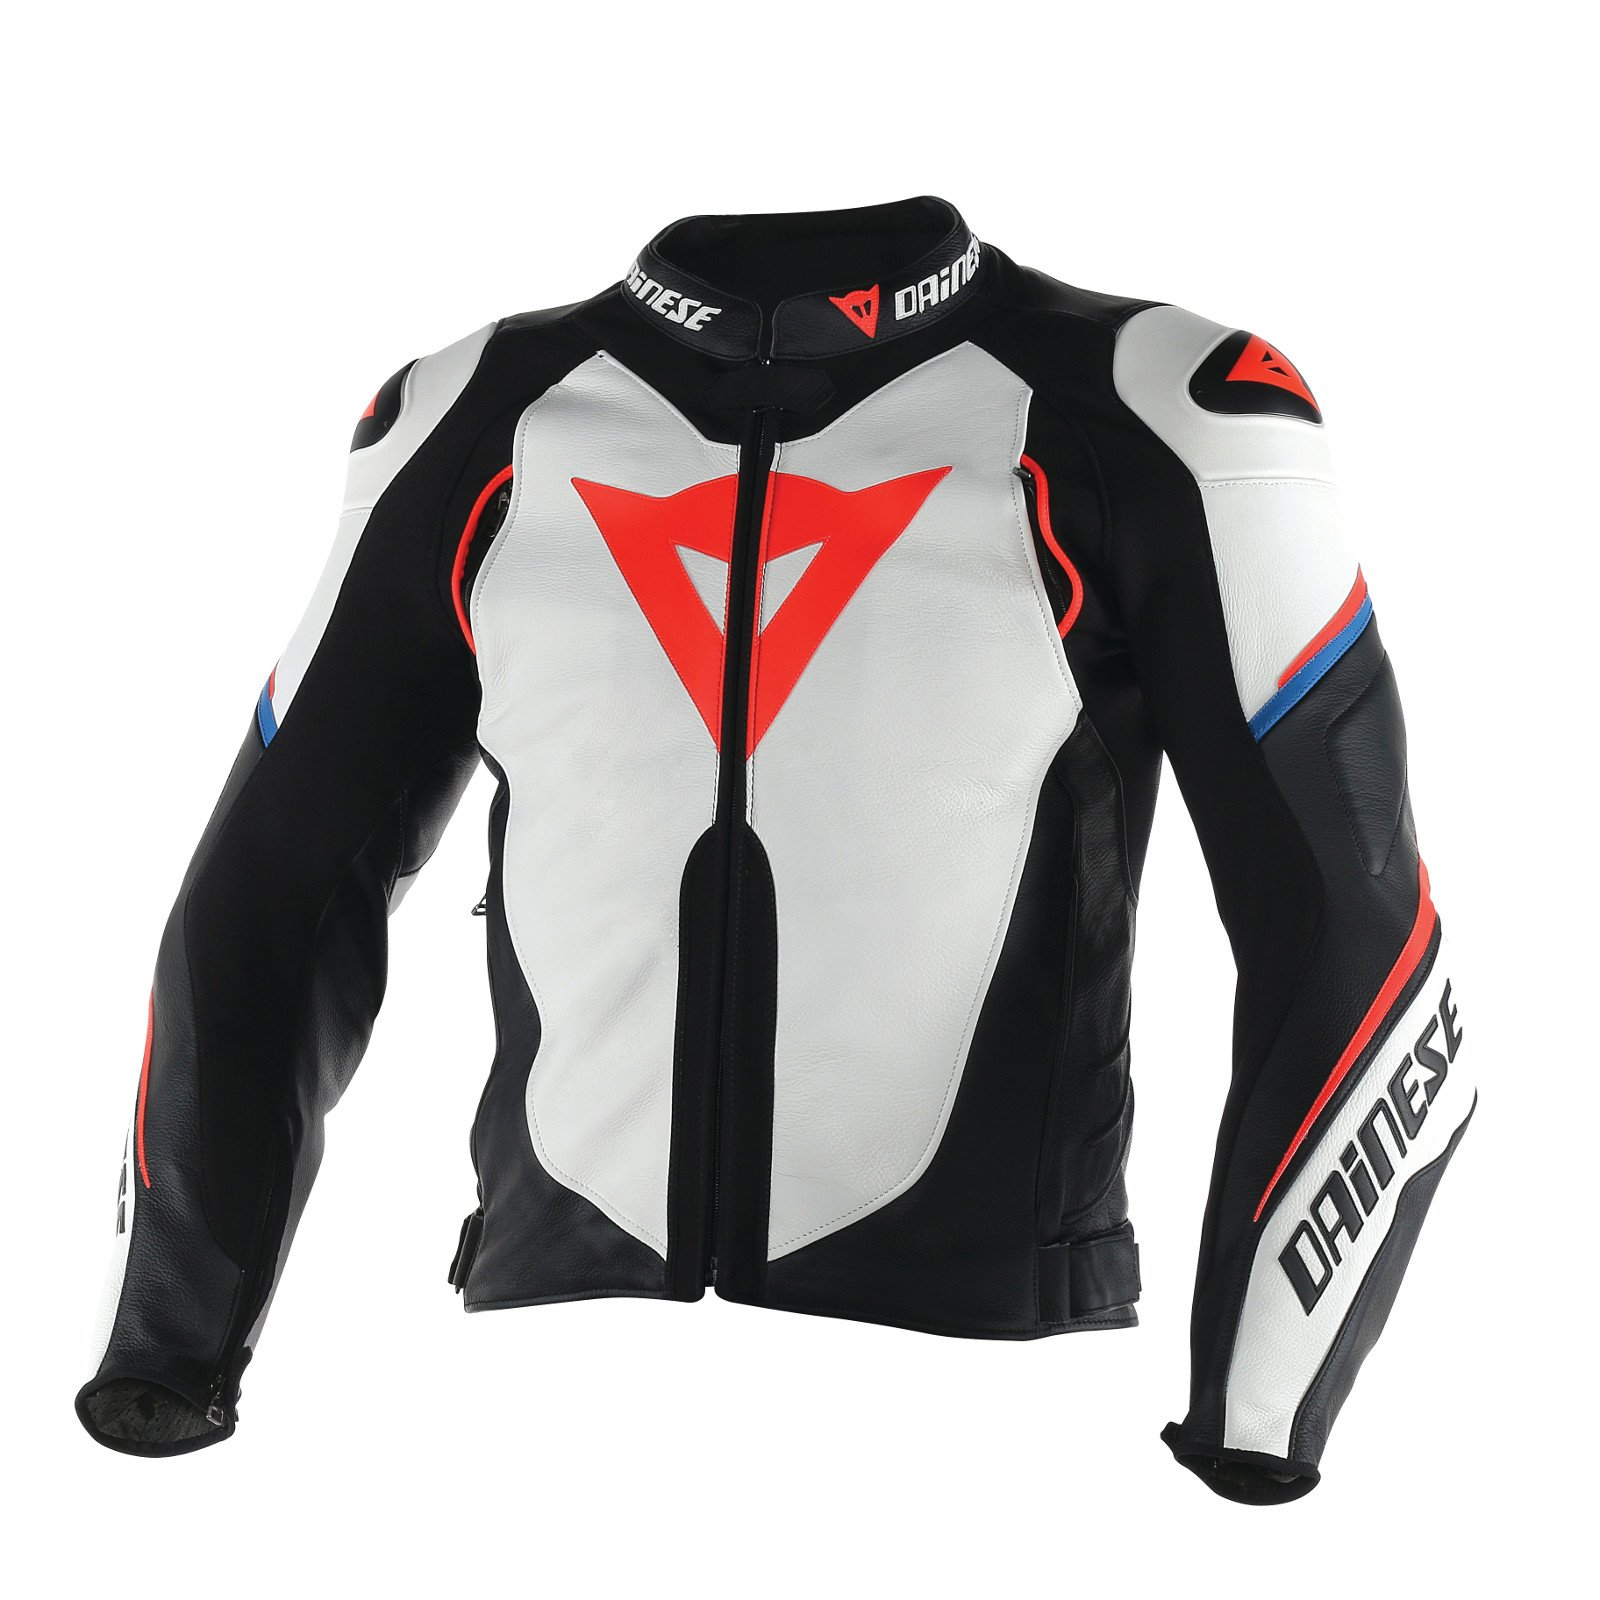 39015250 Galleon - Dainese Super Speed D1 Leather Jacket (50)  (BLACK/ANTHRACITE/WHITE)